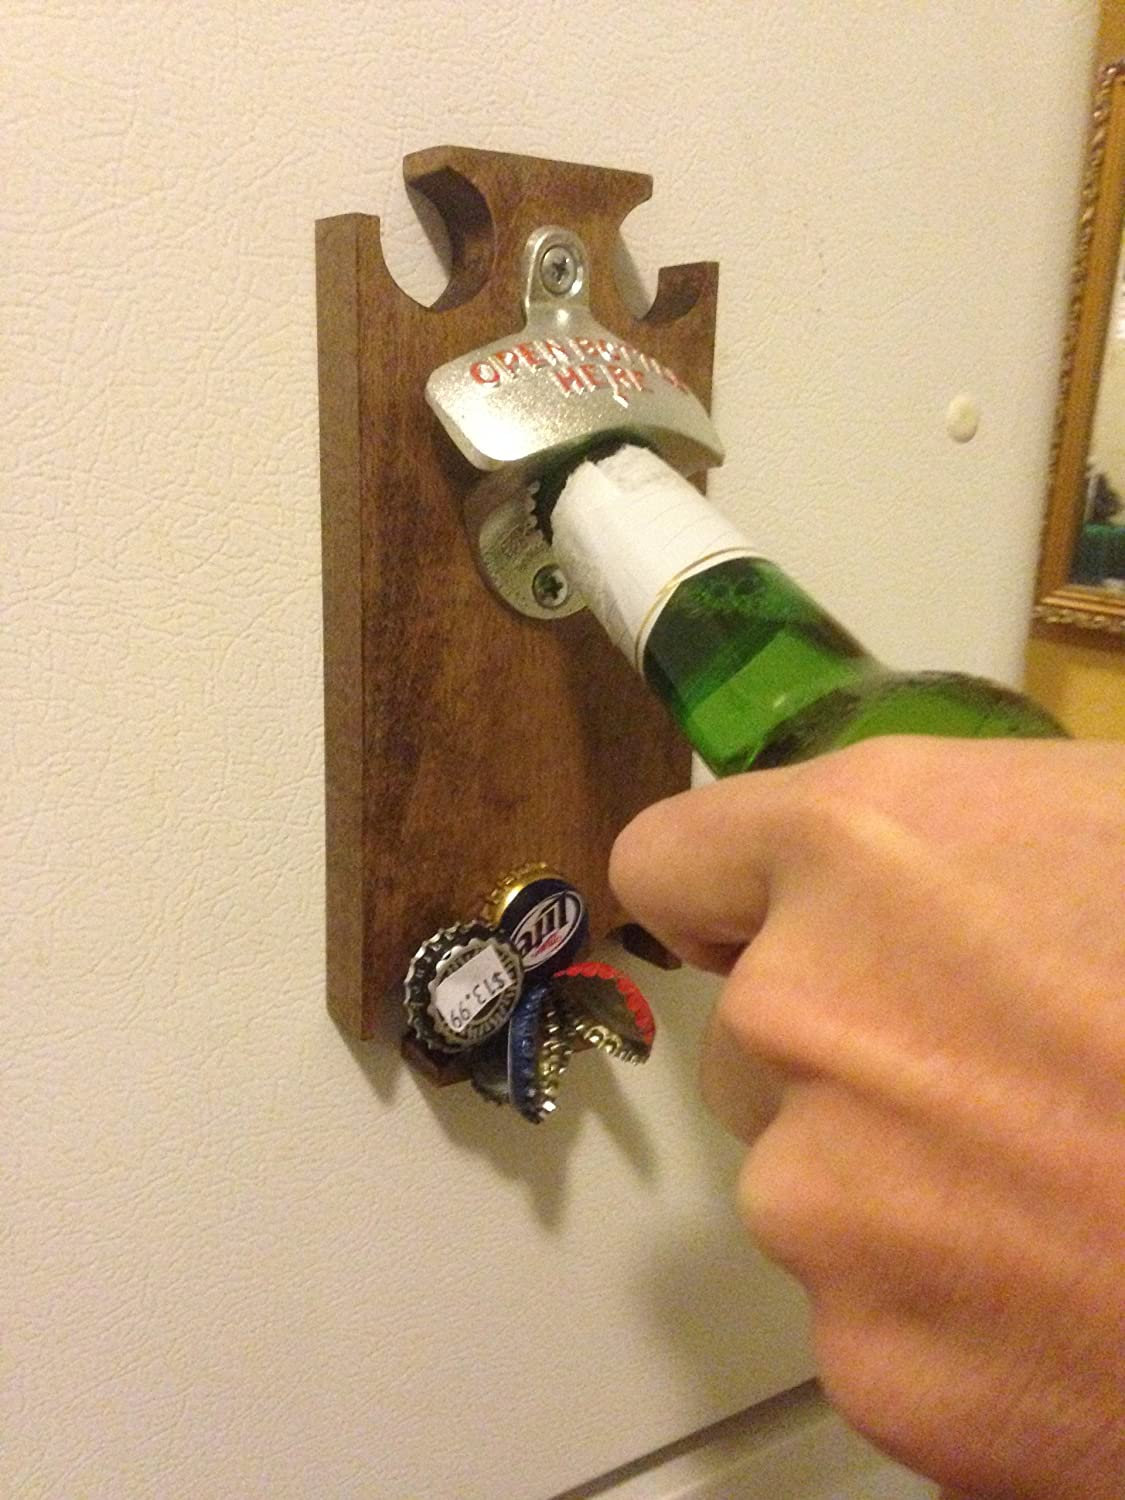 Magnetic Bottle Opener and Cap Catcher